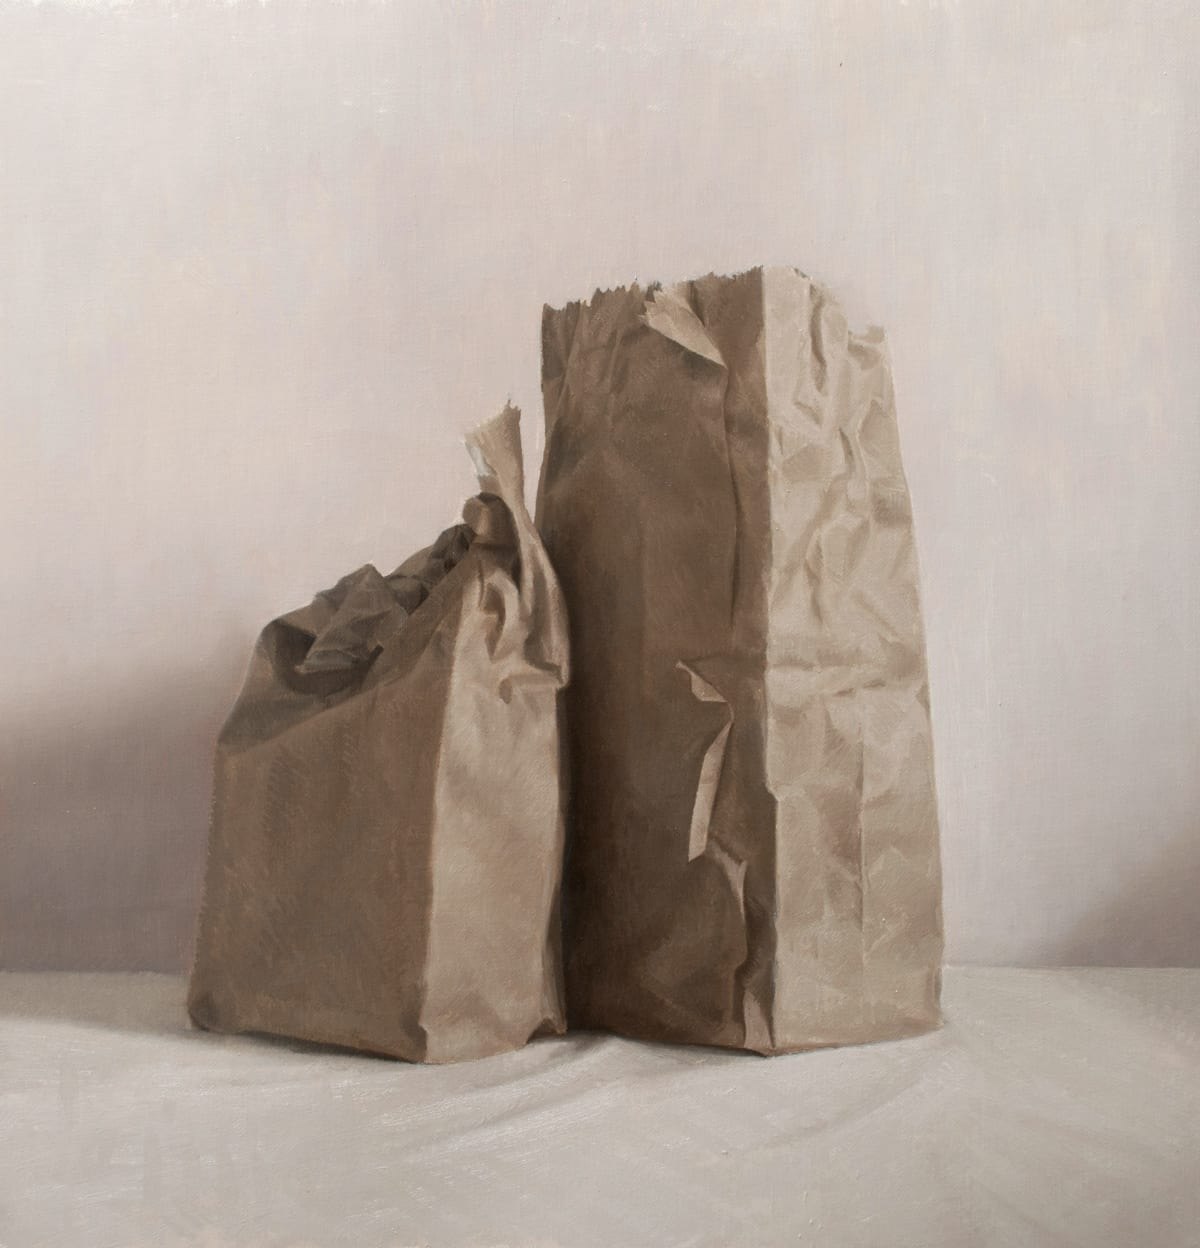 Martin Redmond Two bags Oil on linen 45 x 40 cm